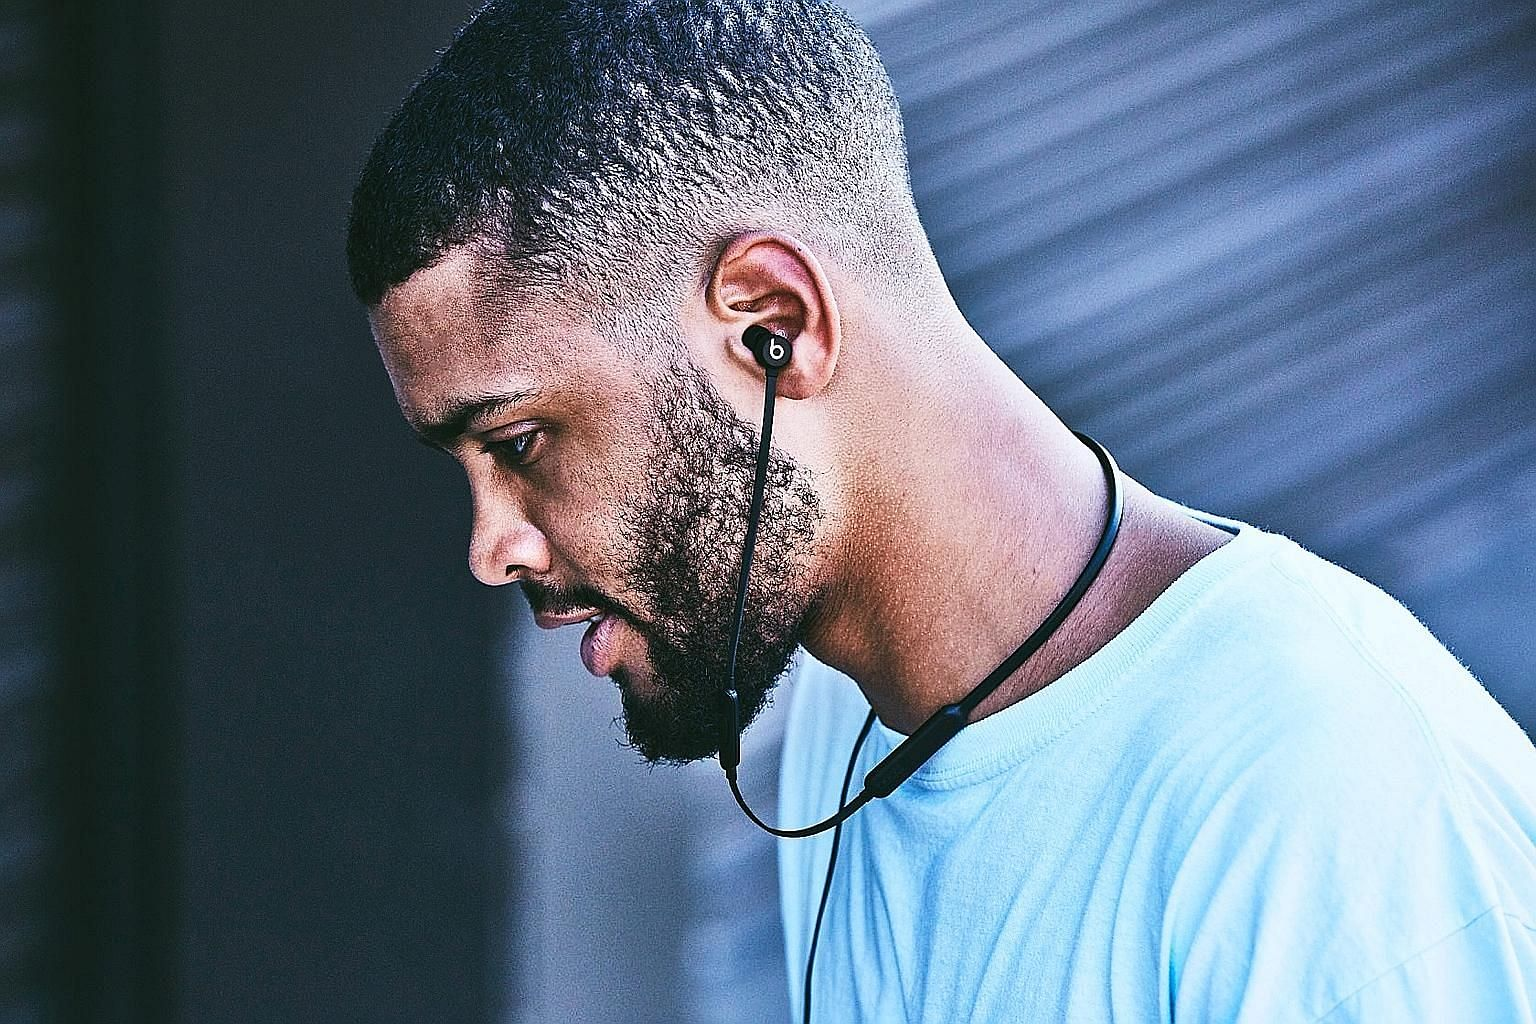 Unlike AirPods' cordless design, the BeatsX looks almost like any neckband-style wireless Bluetooth earphones.